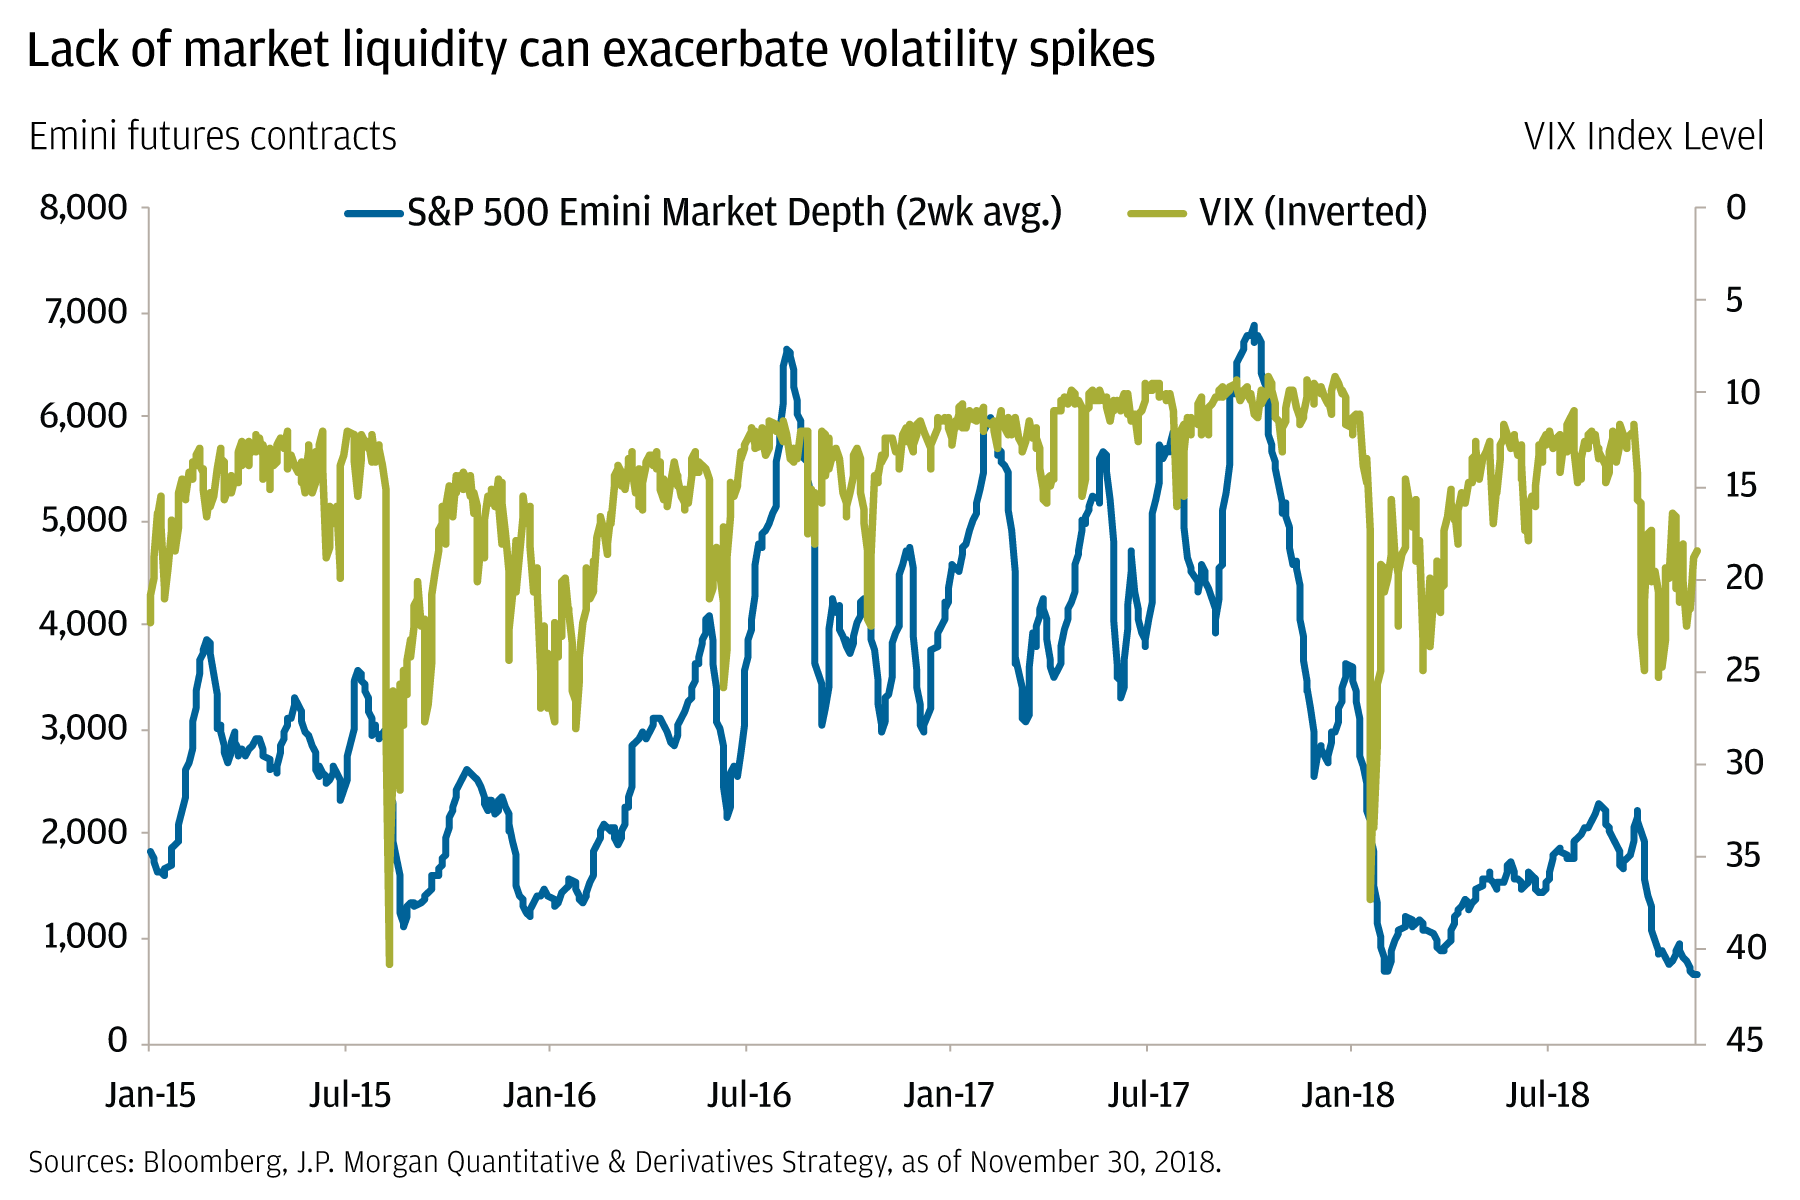 Line chart compares the S&P 500 Emini Market Depth (a measure of market liquidity) to the VIX (a measure of market volatility) from January 2015 to July 2018. This chart highlights that when market liquidity is low, historically, market volatility has been high.